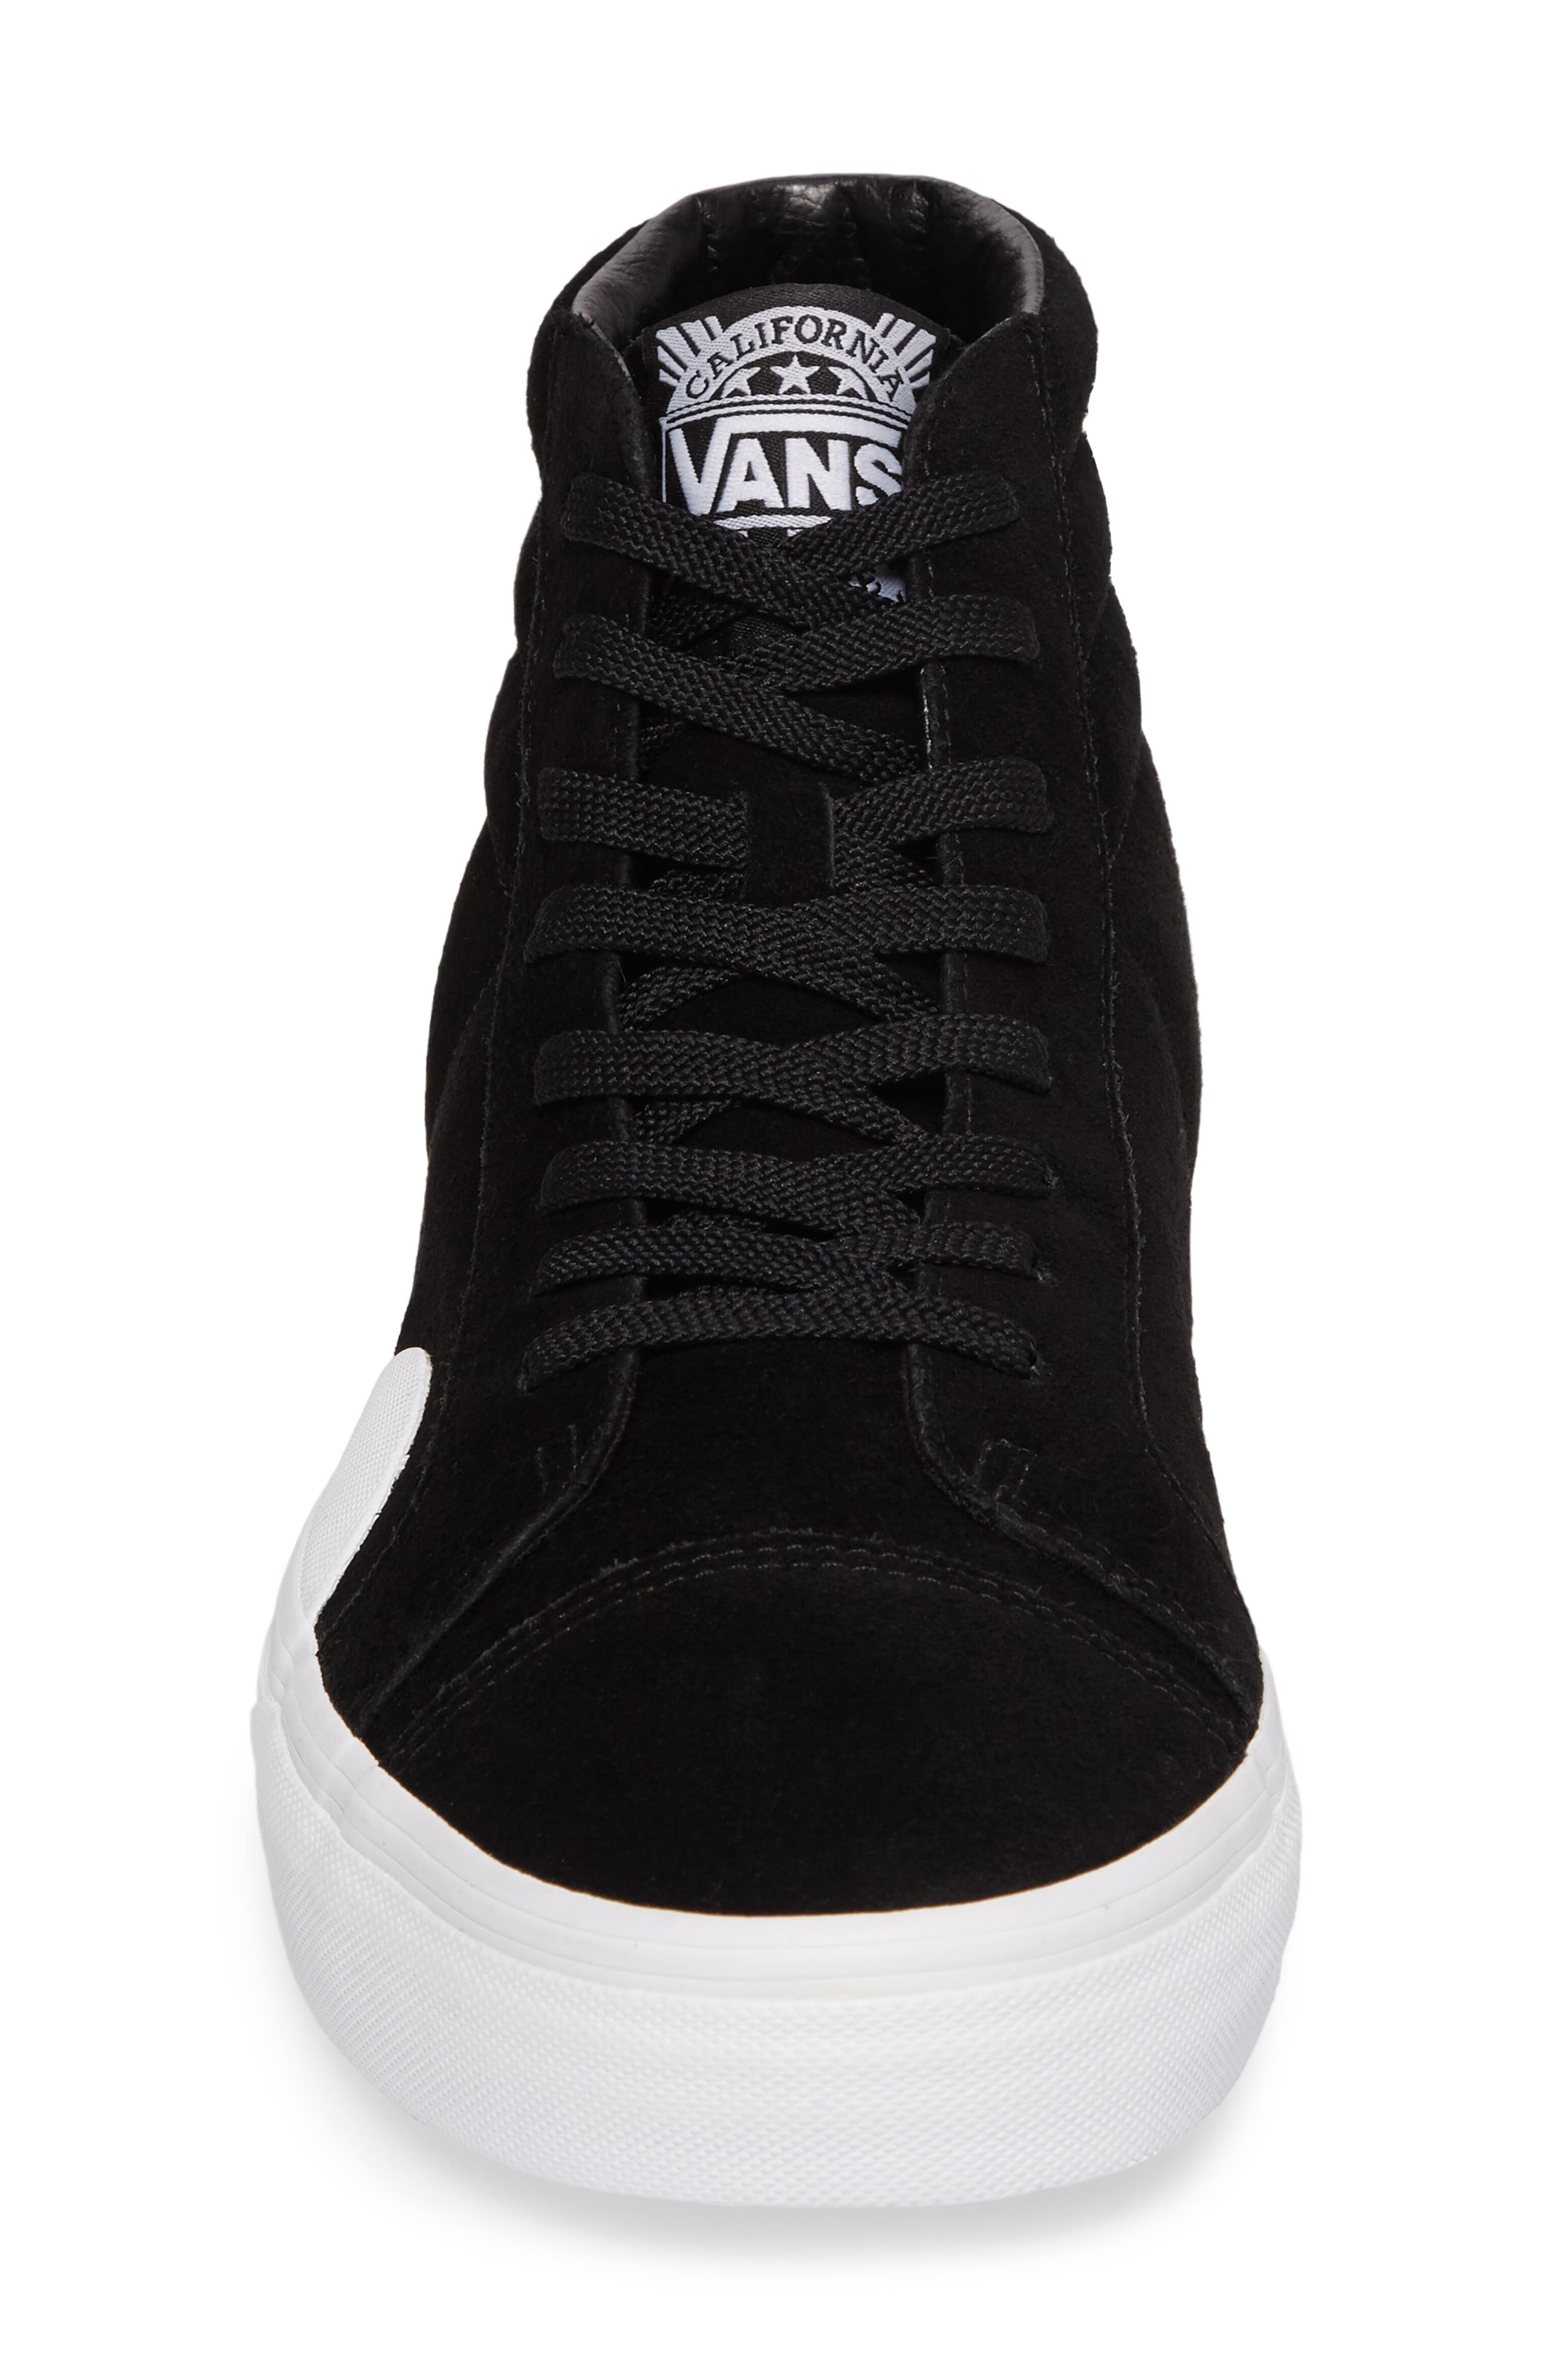 Style 238 Sneaker,                             Alternate thumbnail 4, color,                             Black/ White Suede